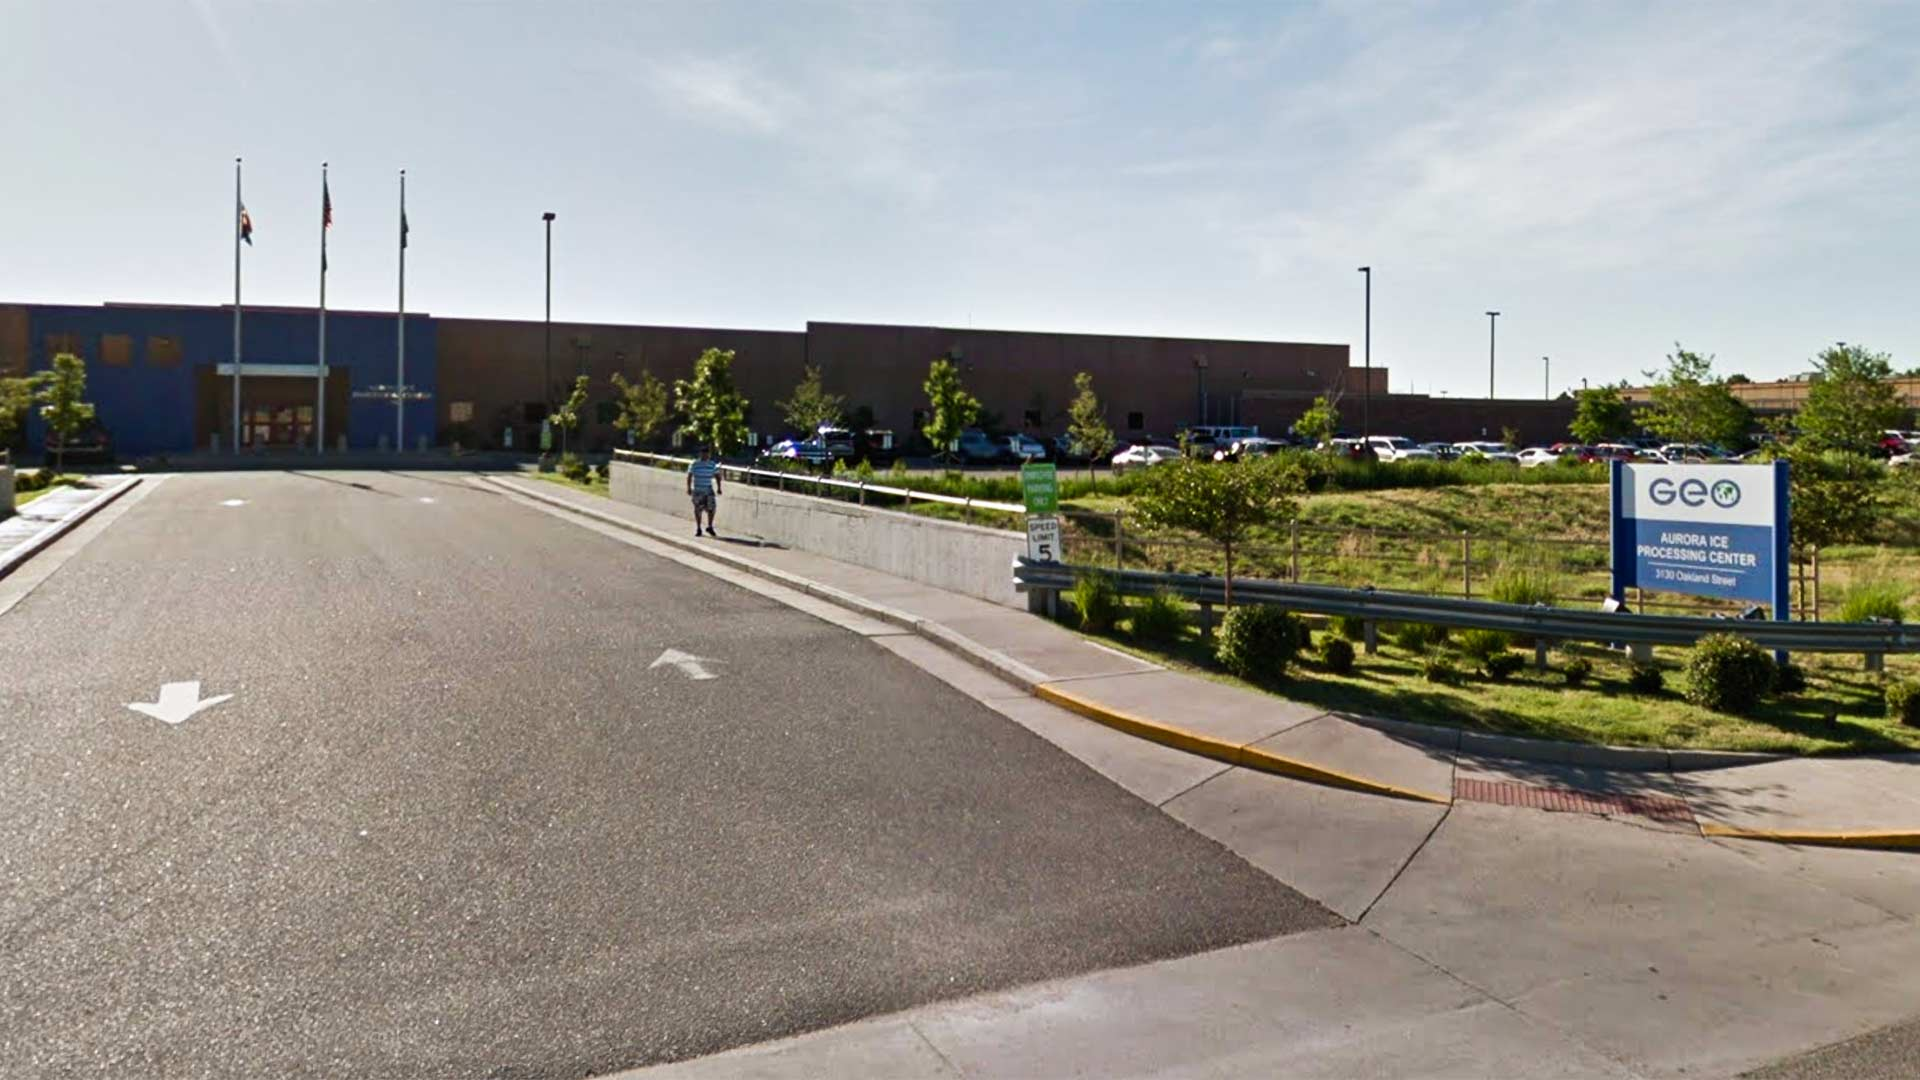 Google Street View image of the entrance to the GEO Group's immigrant detention facility in Aurora, Colorado.